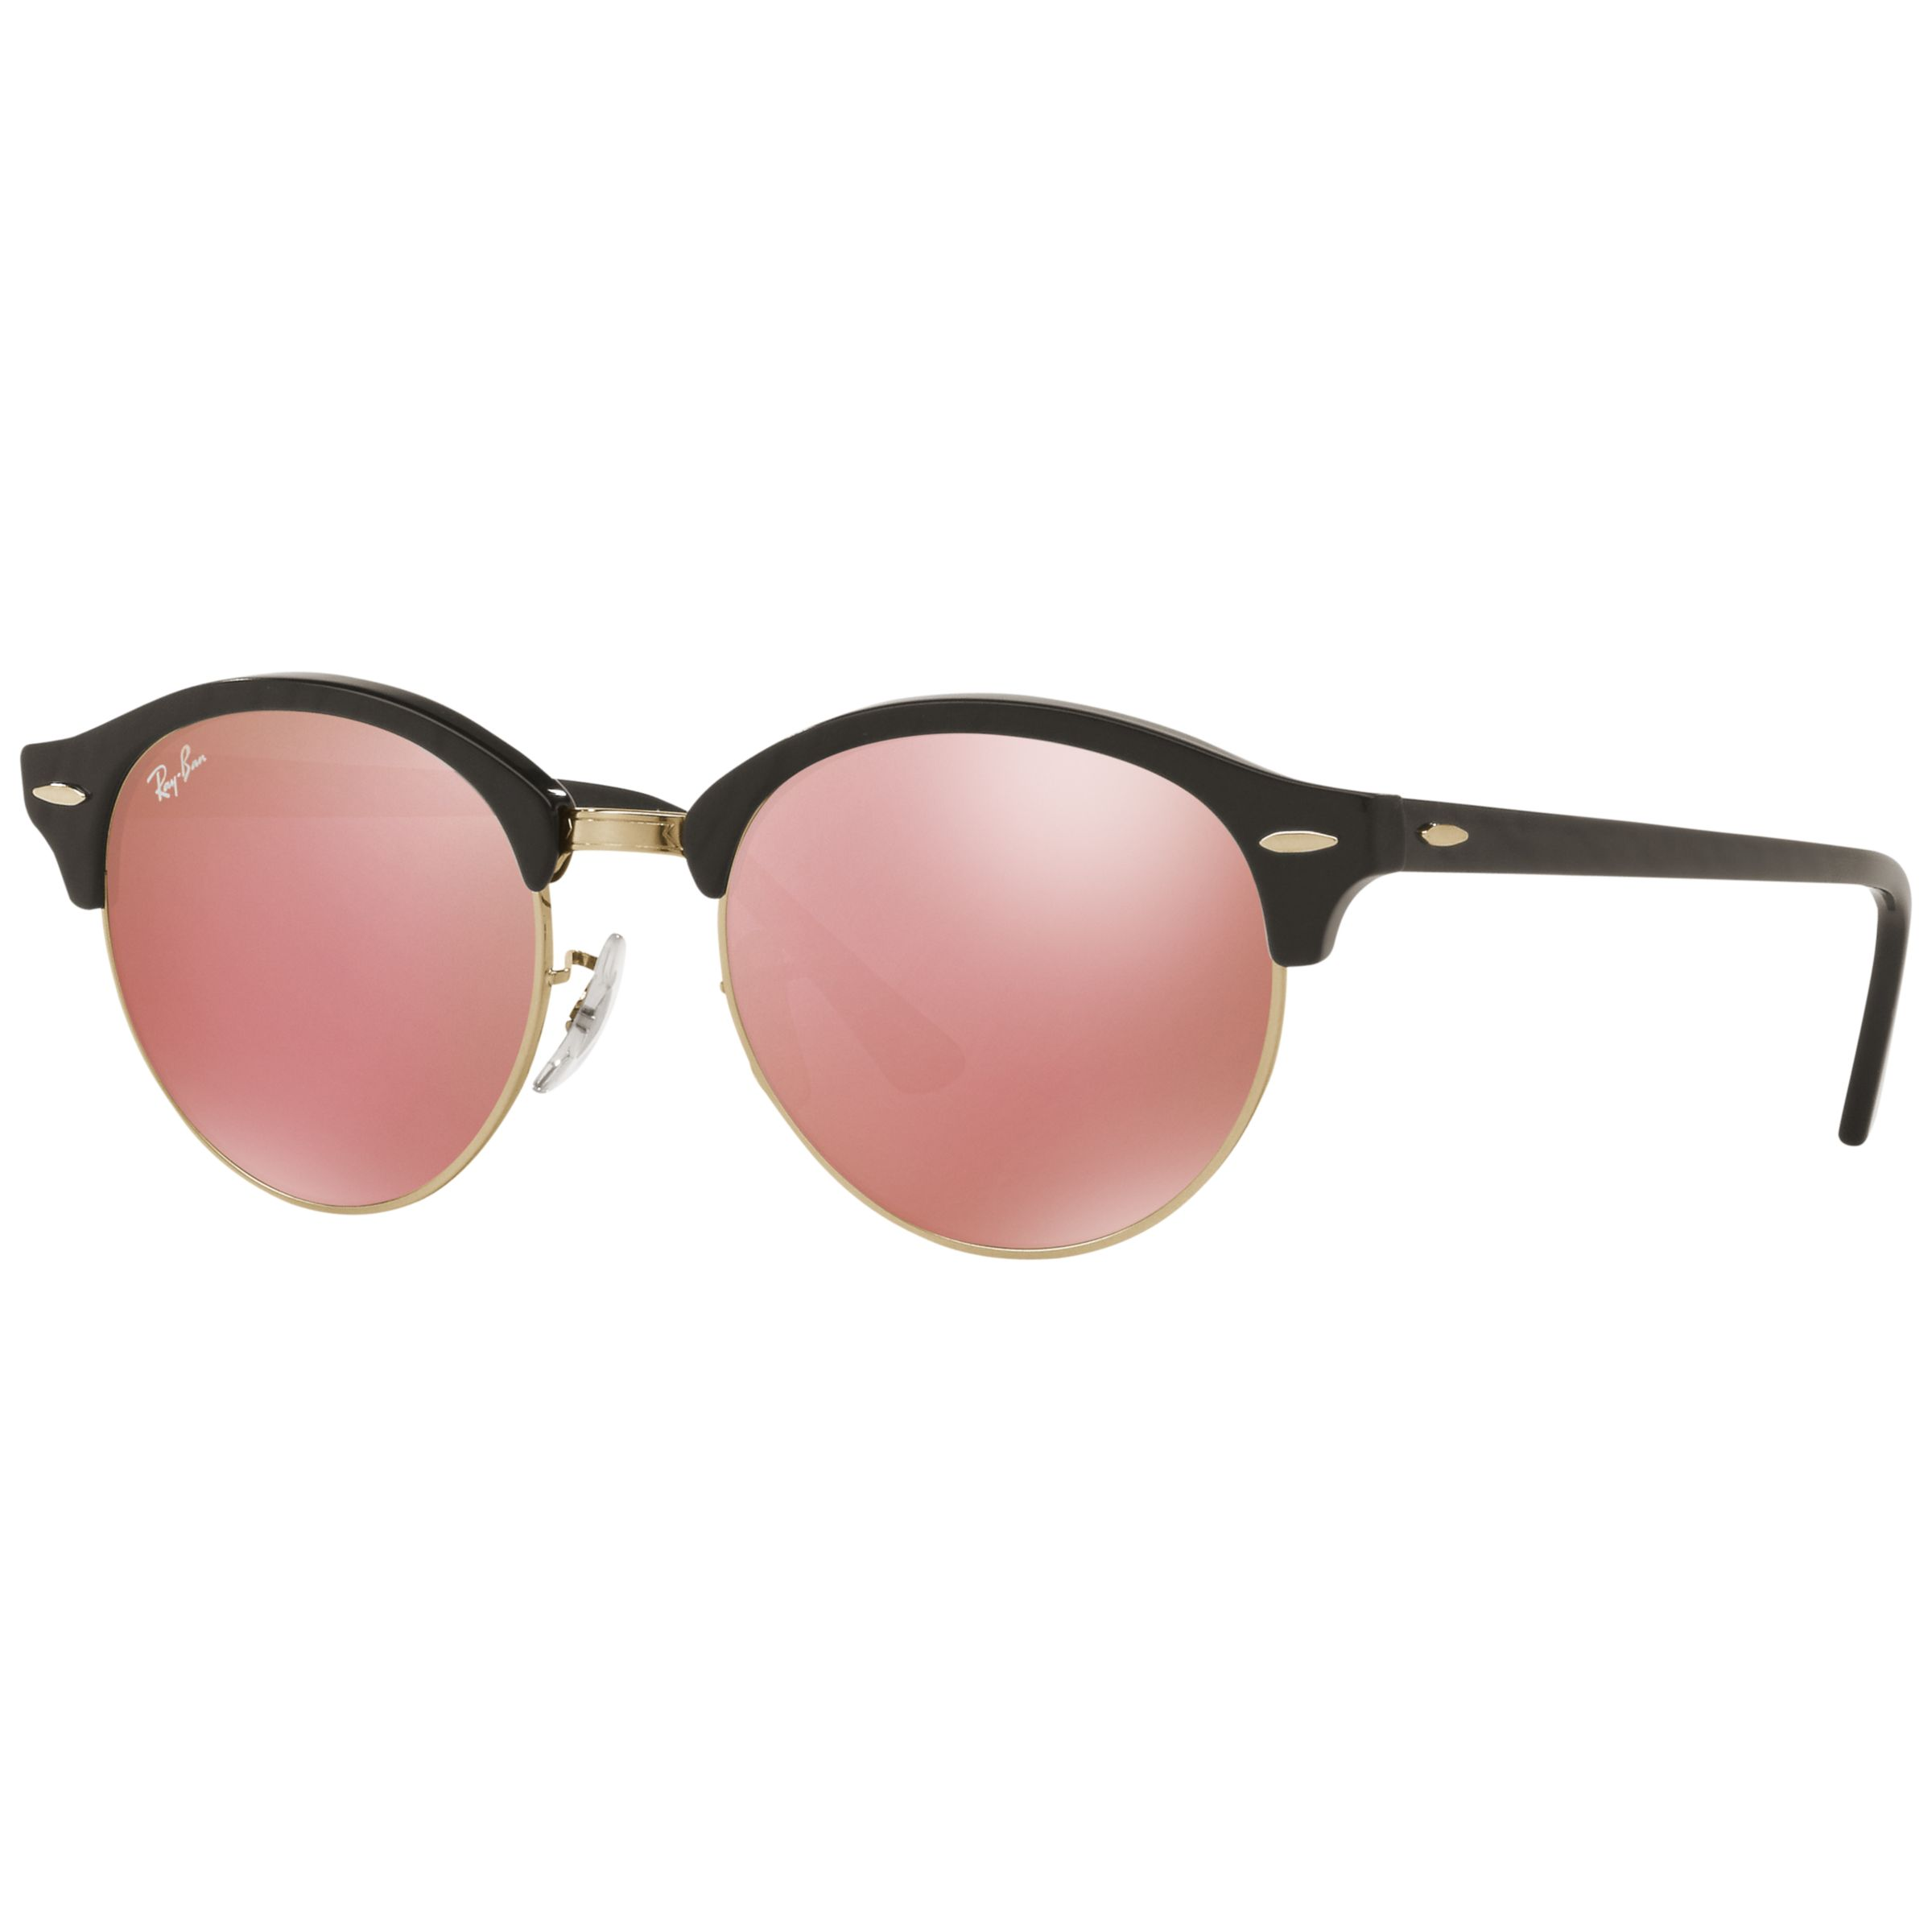 Ray Ban Glasses Frame Malaysia : ray-ban sunglasses for women pink The Neath Property News